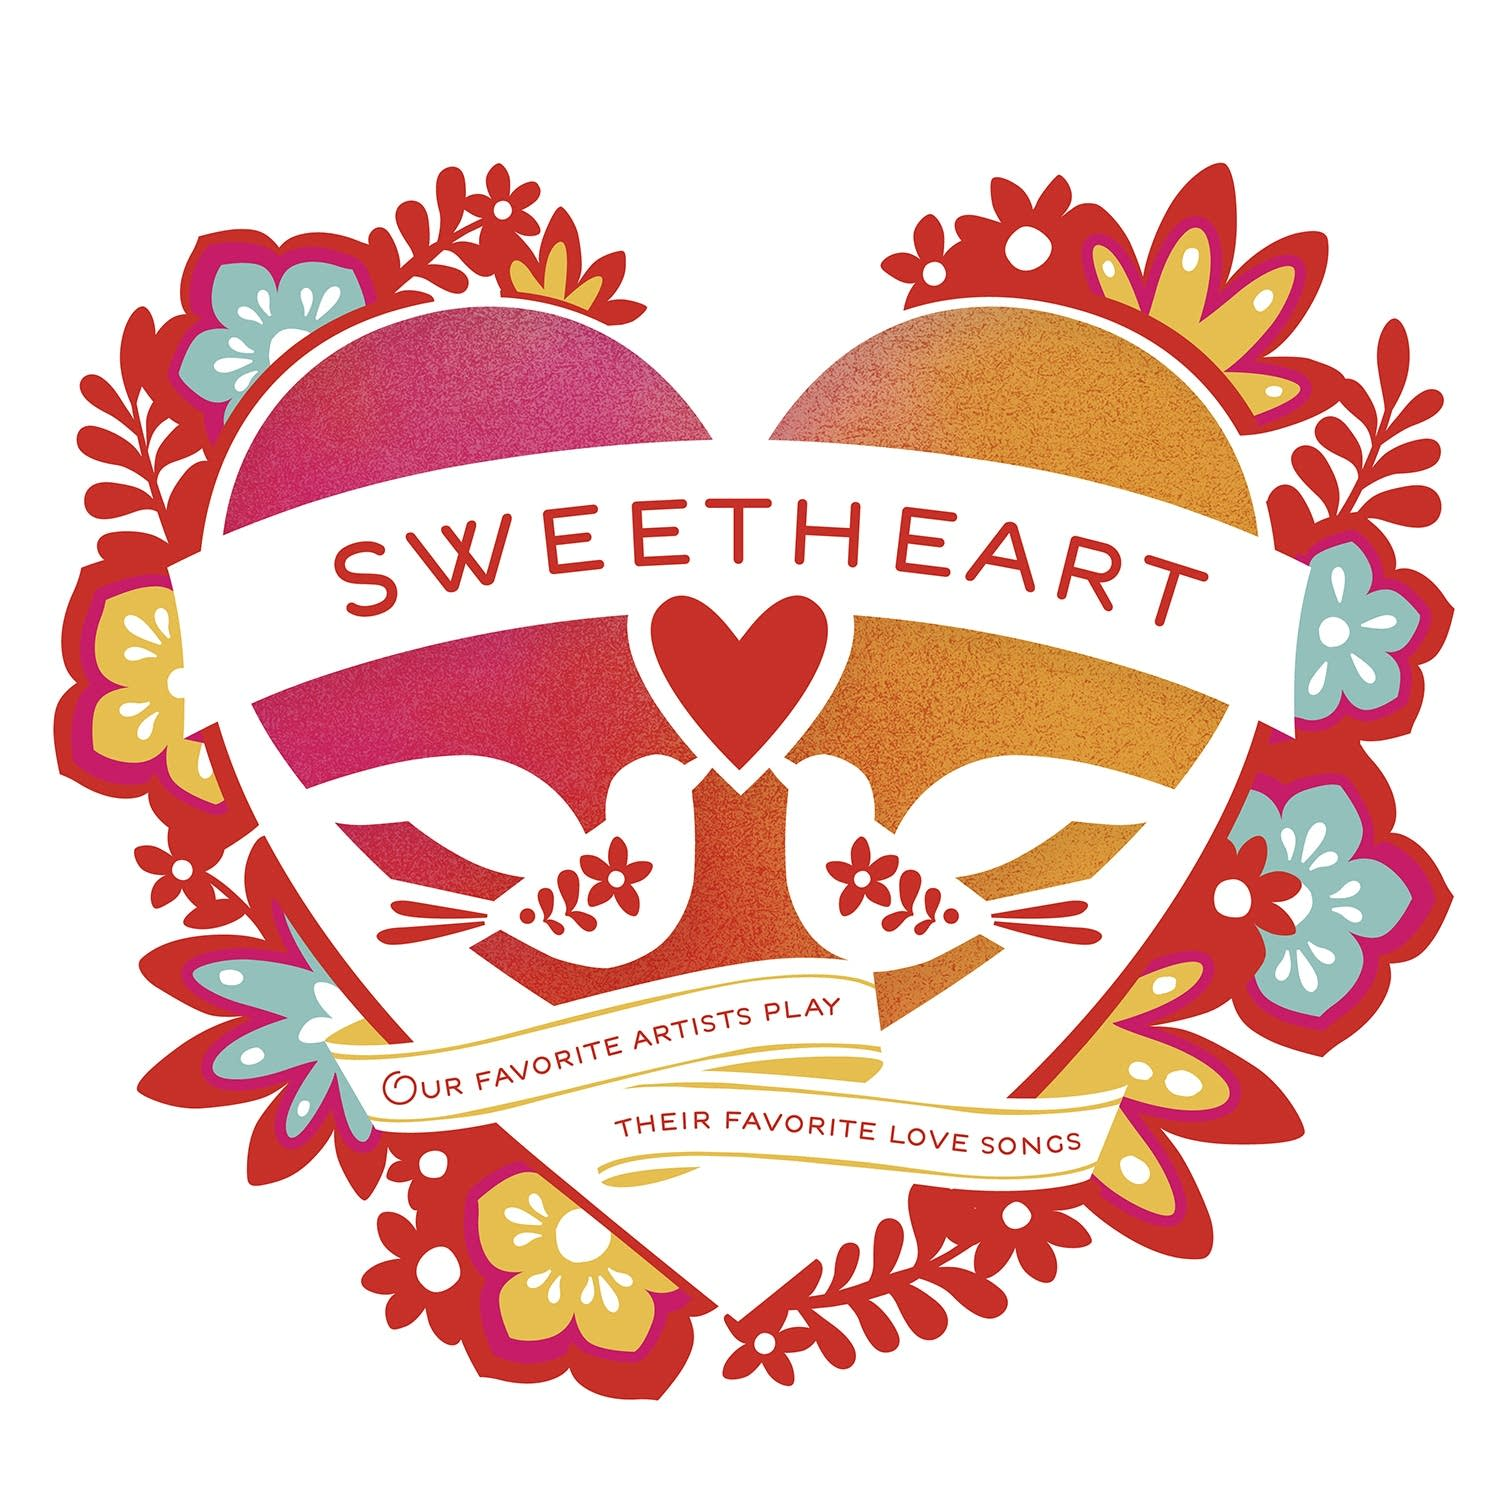 sweetheart 2014 album cover